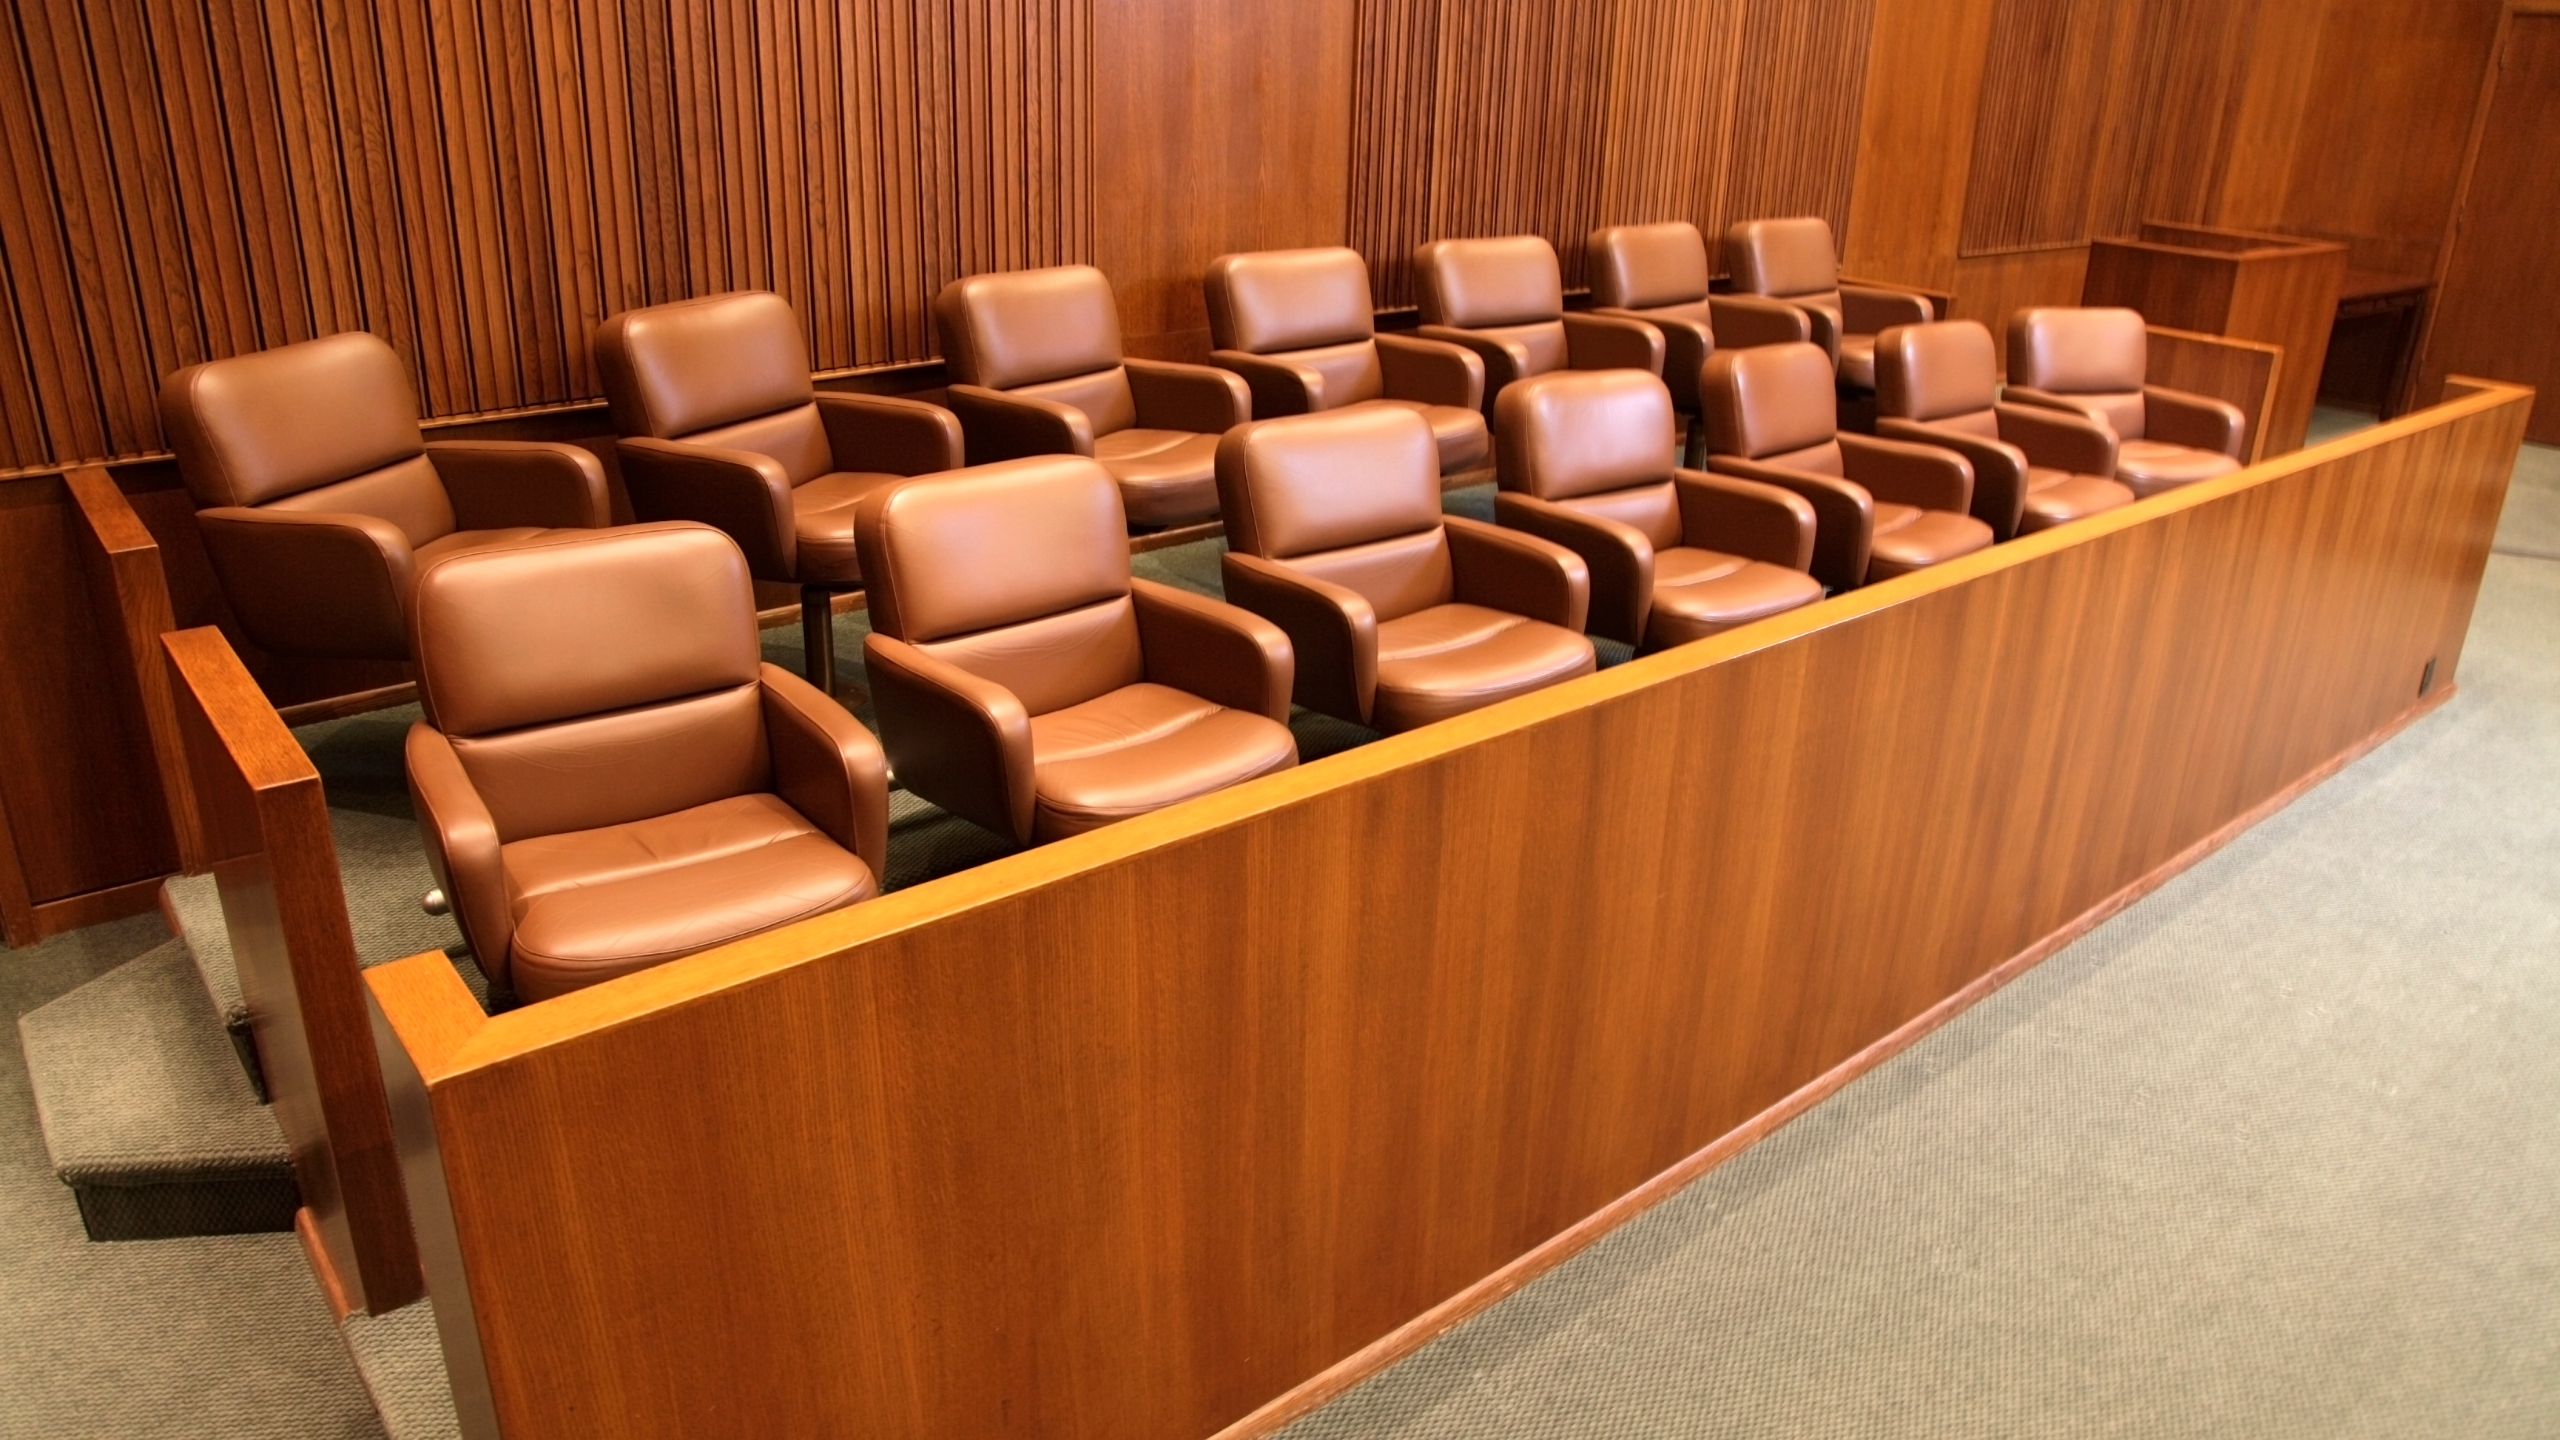 A courtroom jury box is seen in an undated file photo. (Getty Images)